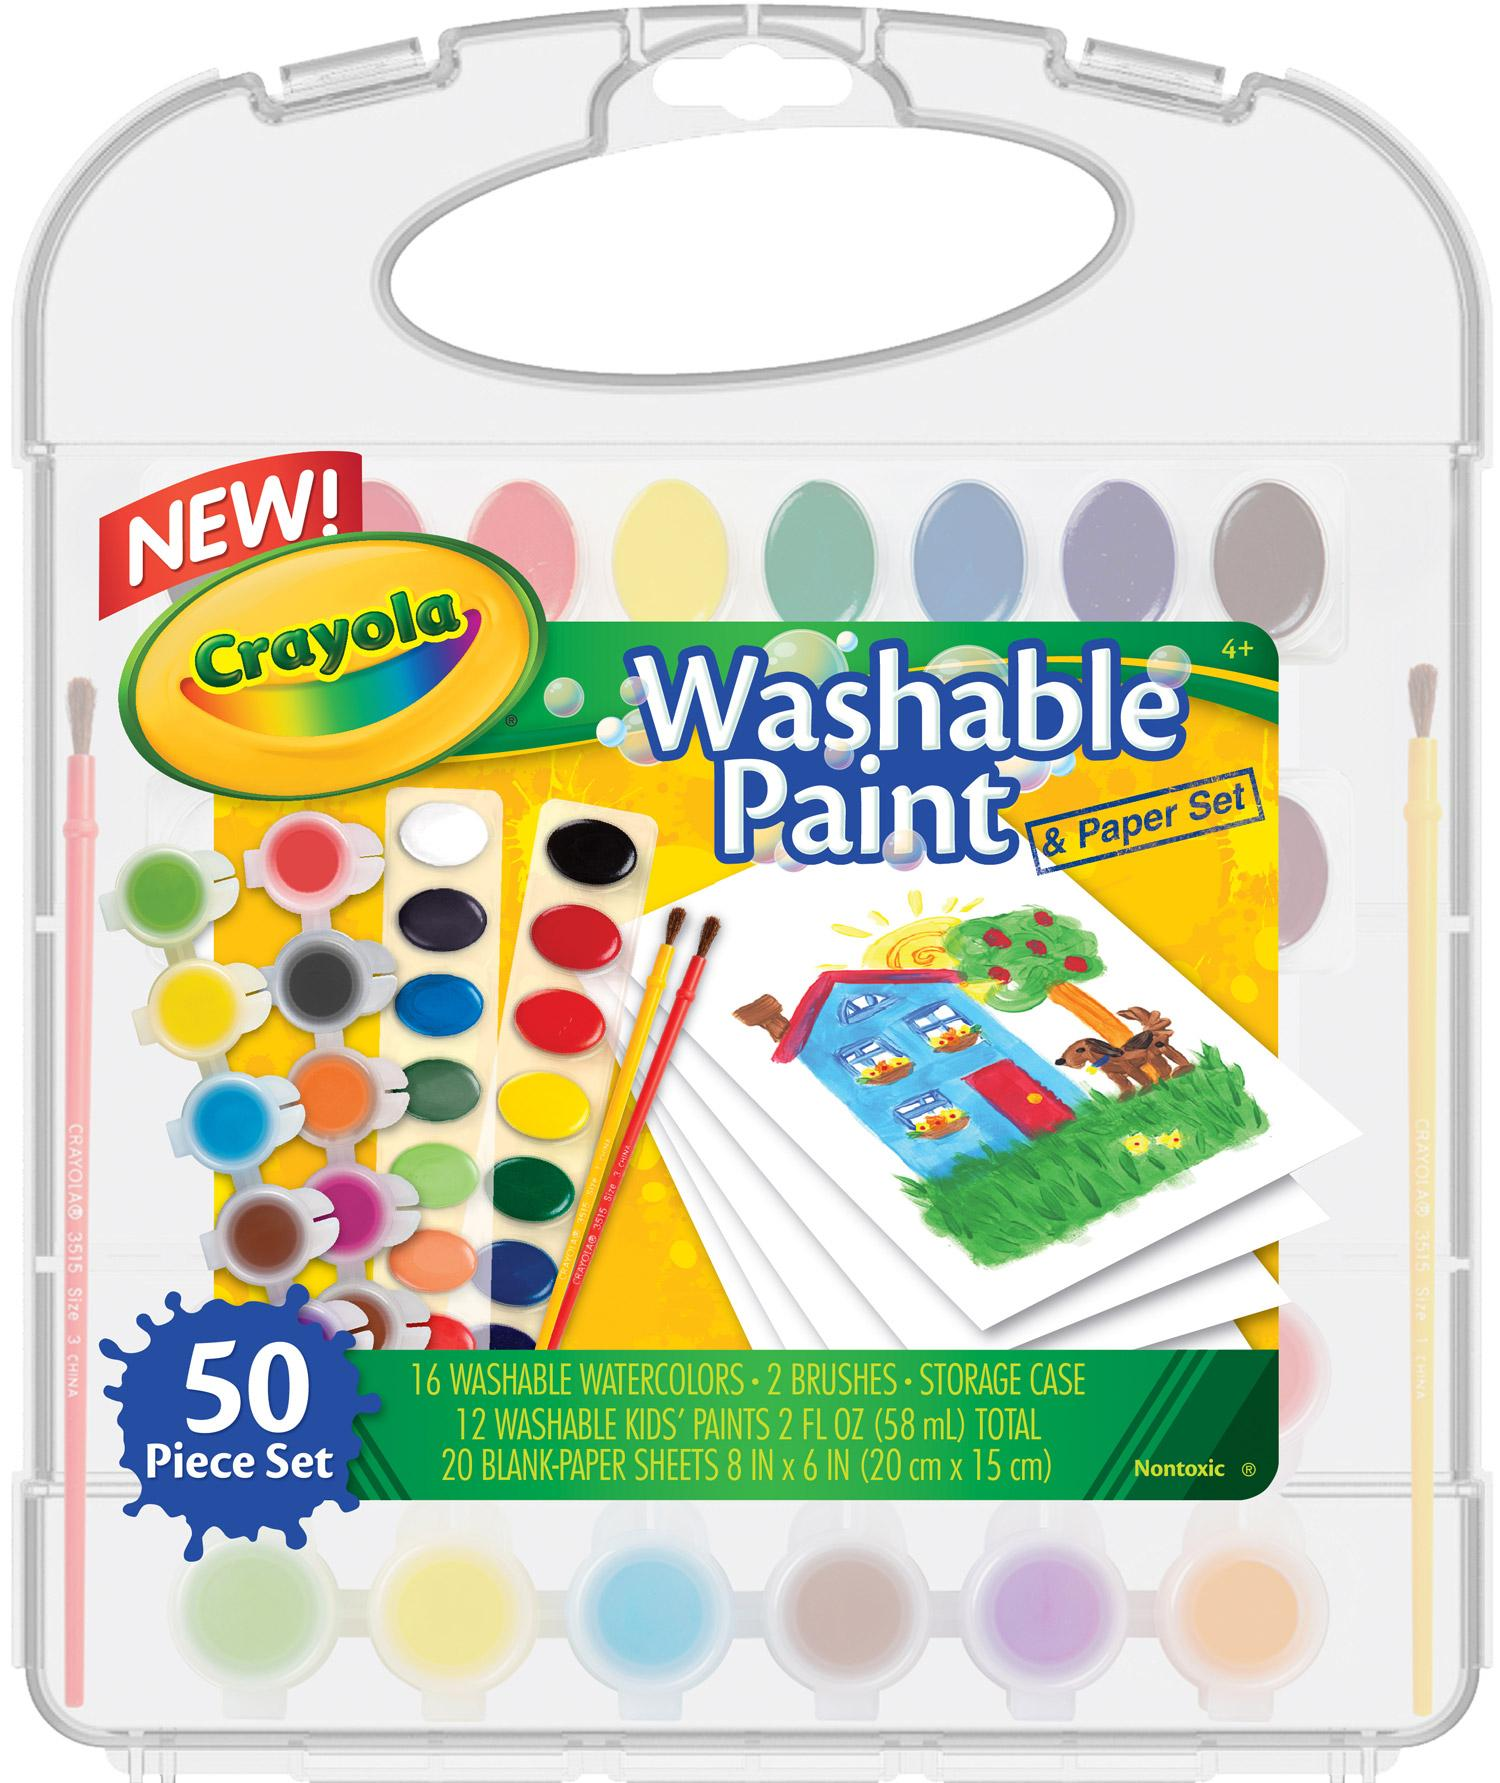 Amazon.com: Crayola Washable Paint n Paper Set: Toys & Games